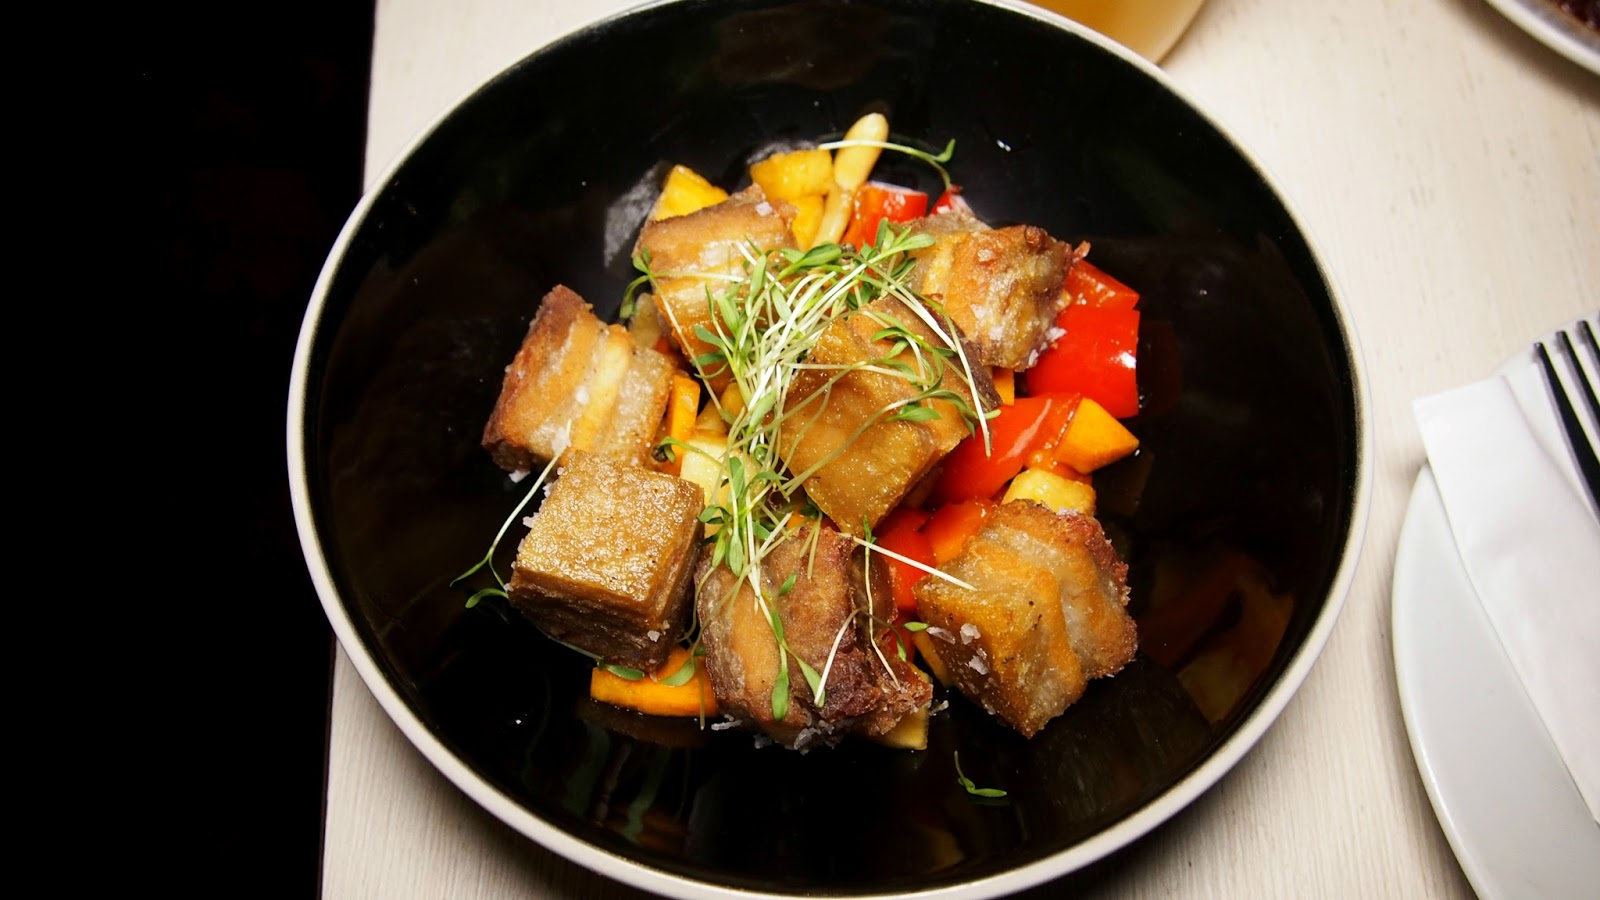 Pork belly and pickle